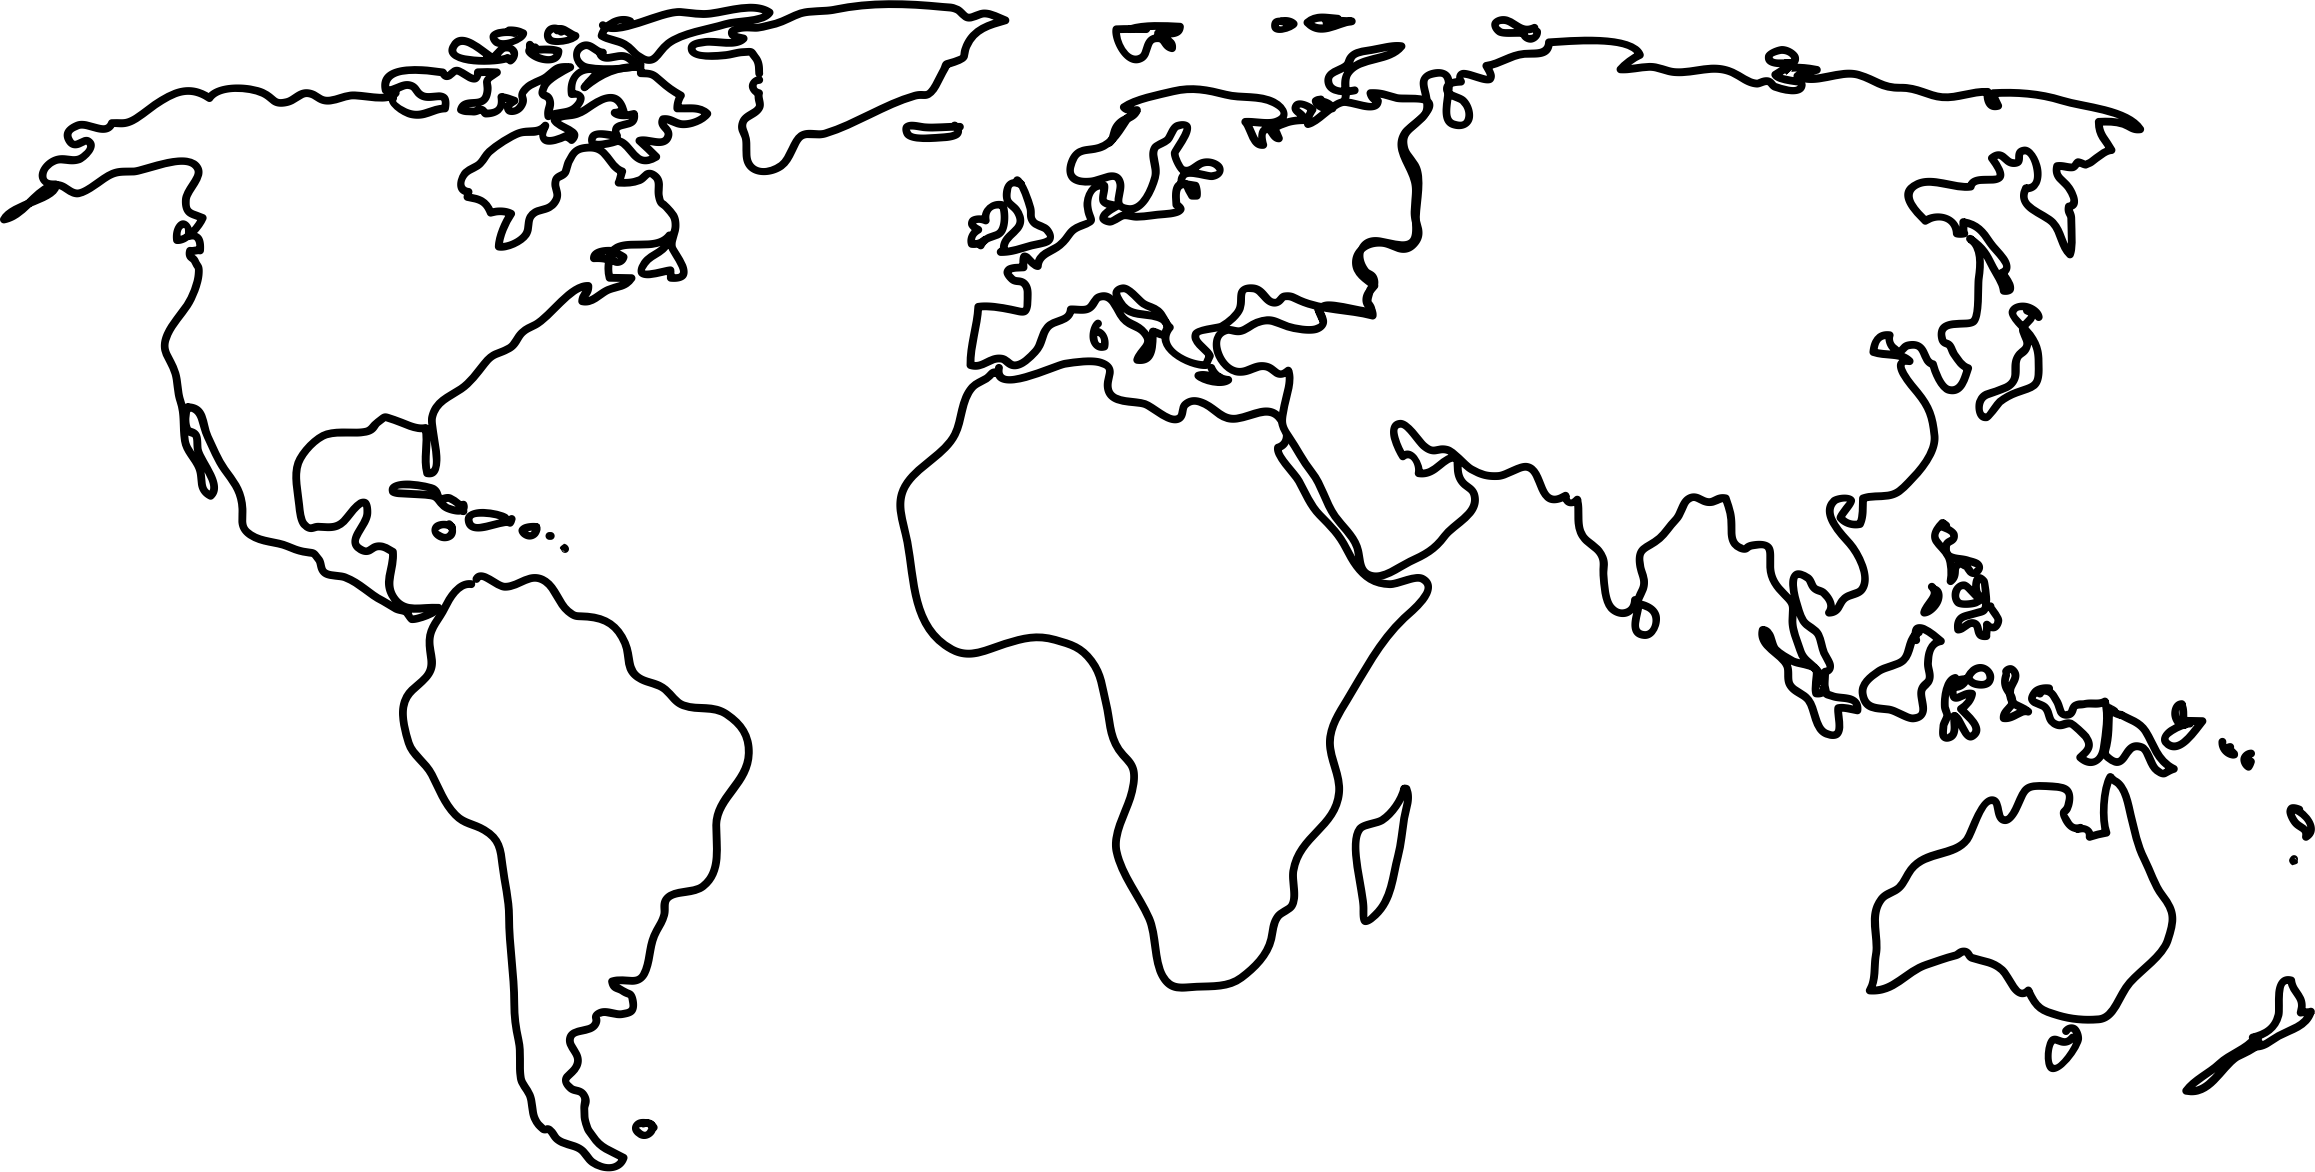 World map outline png. By jkarthik on best